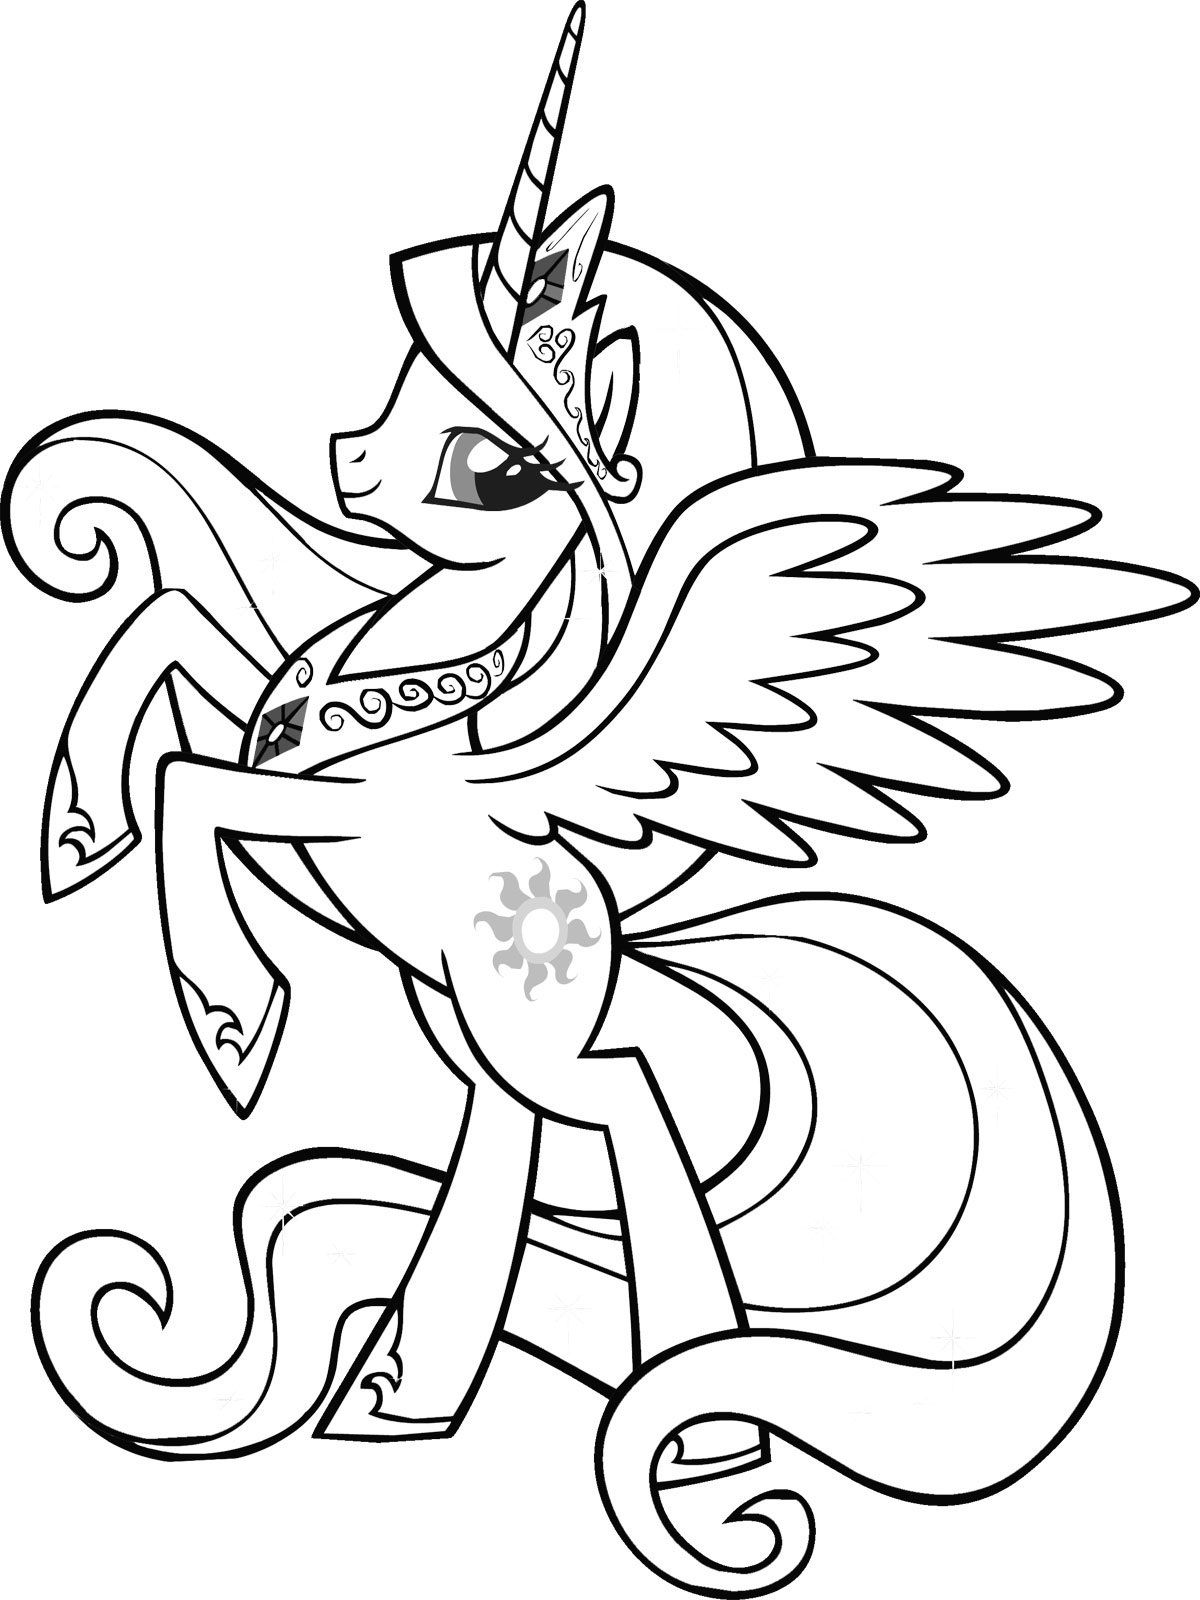 Vintage my little pony coloring pages - Beautiful Queen My Little Pony Coloring Pages